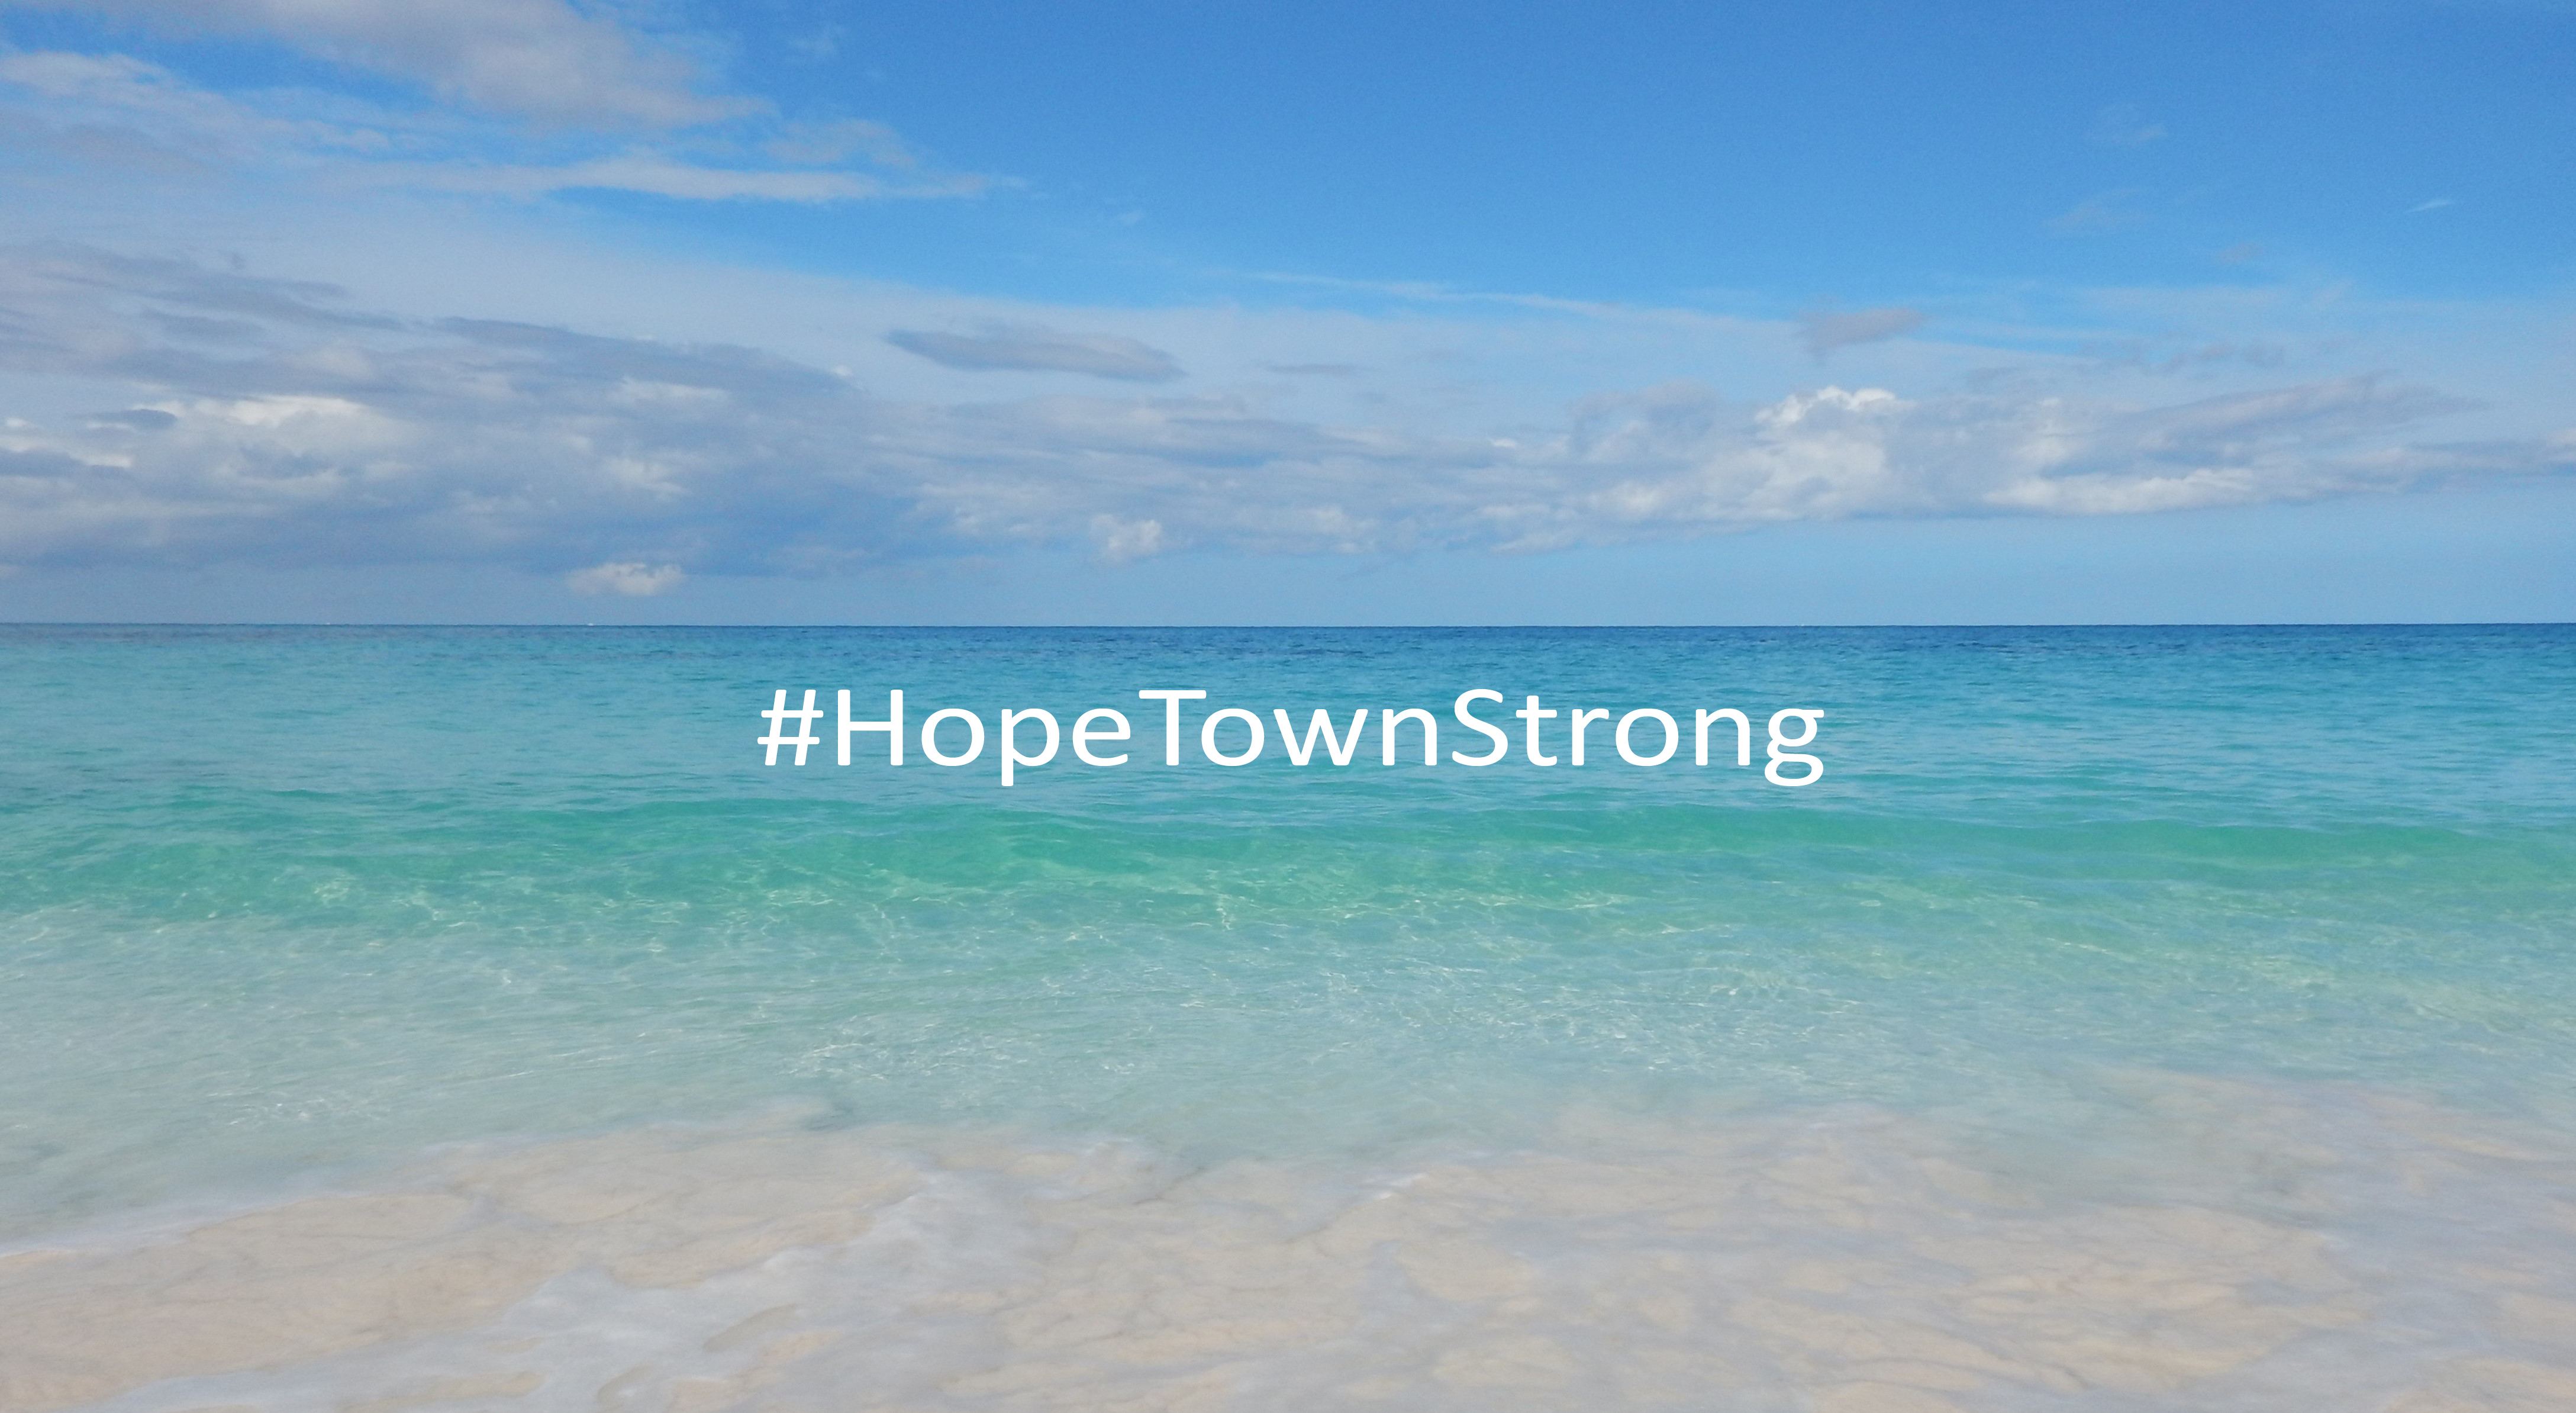 #HopeTownStrong